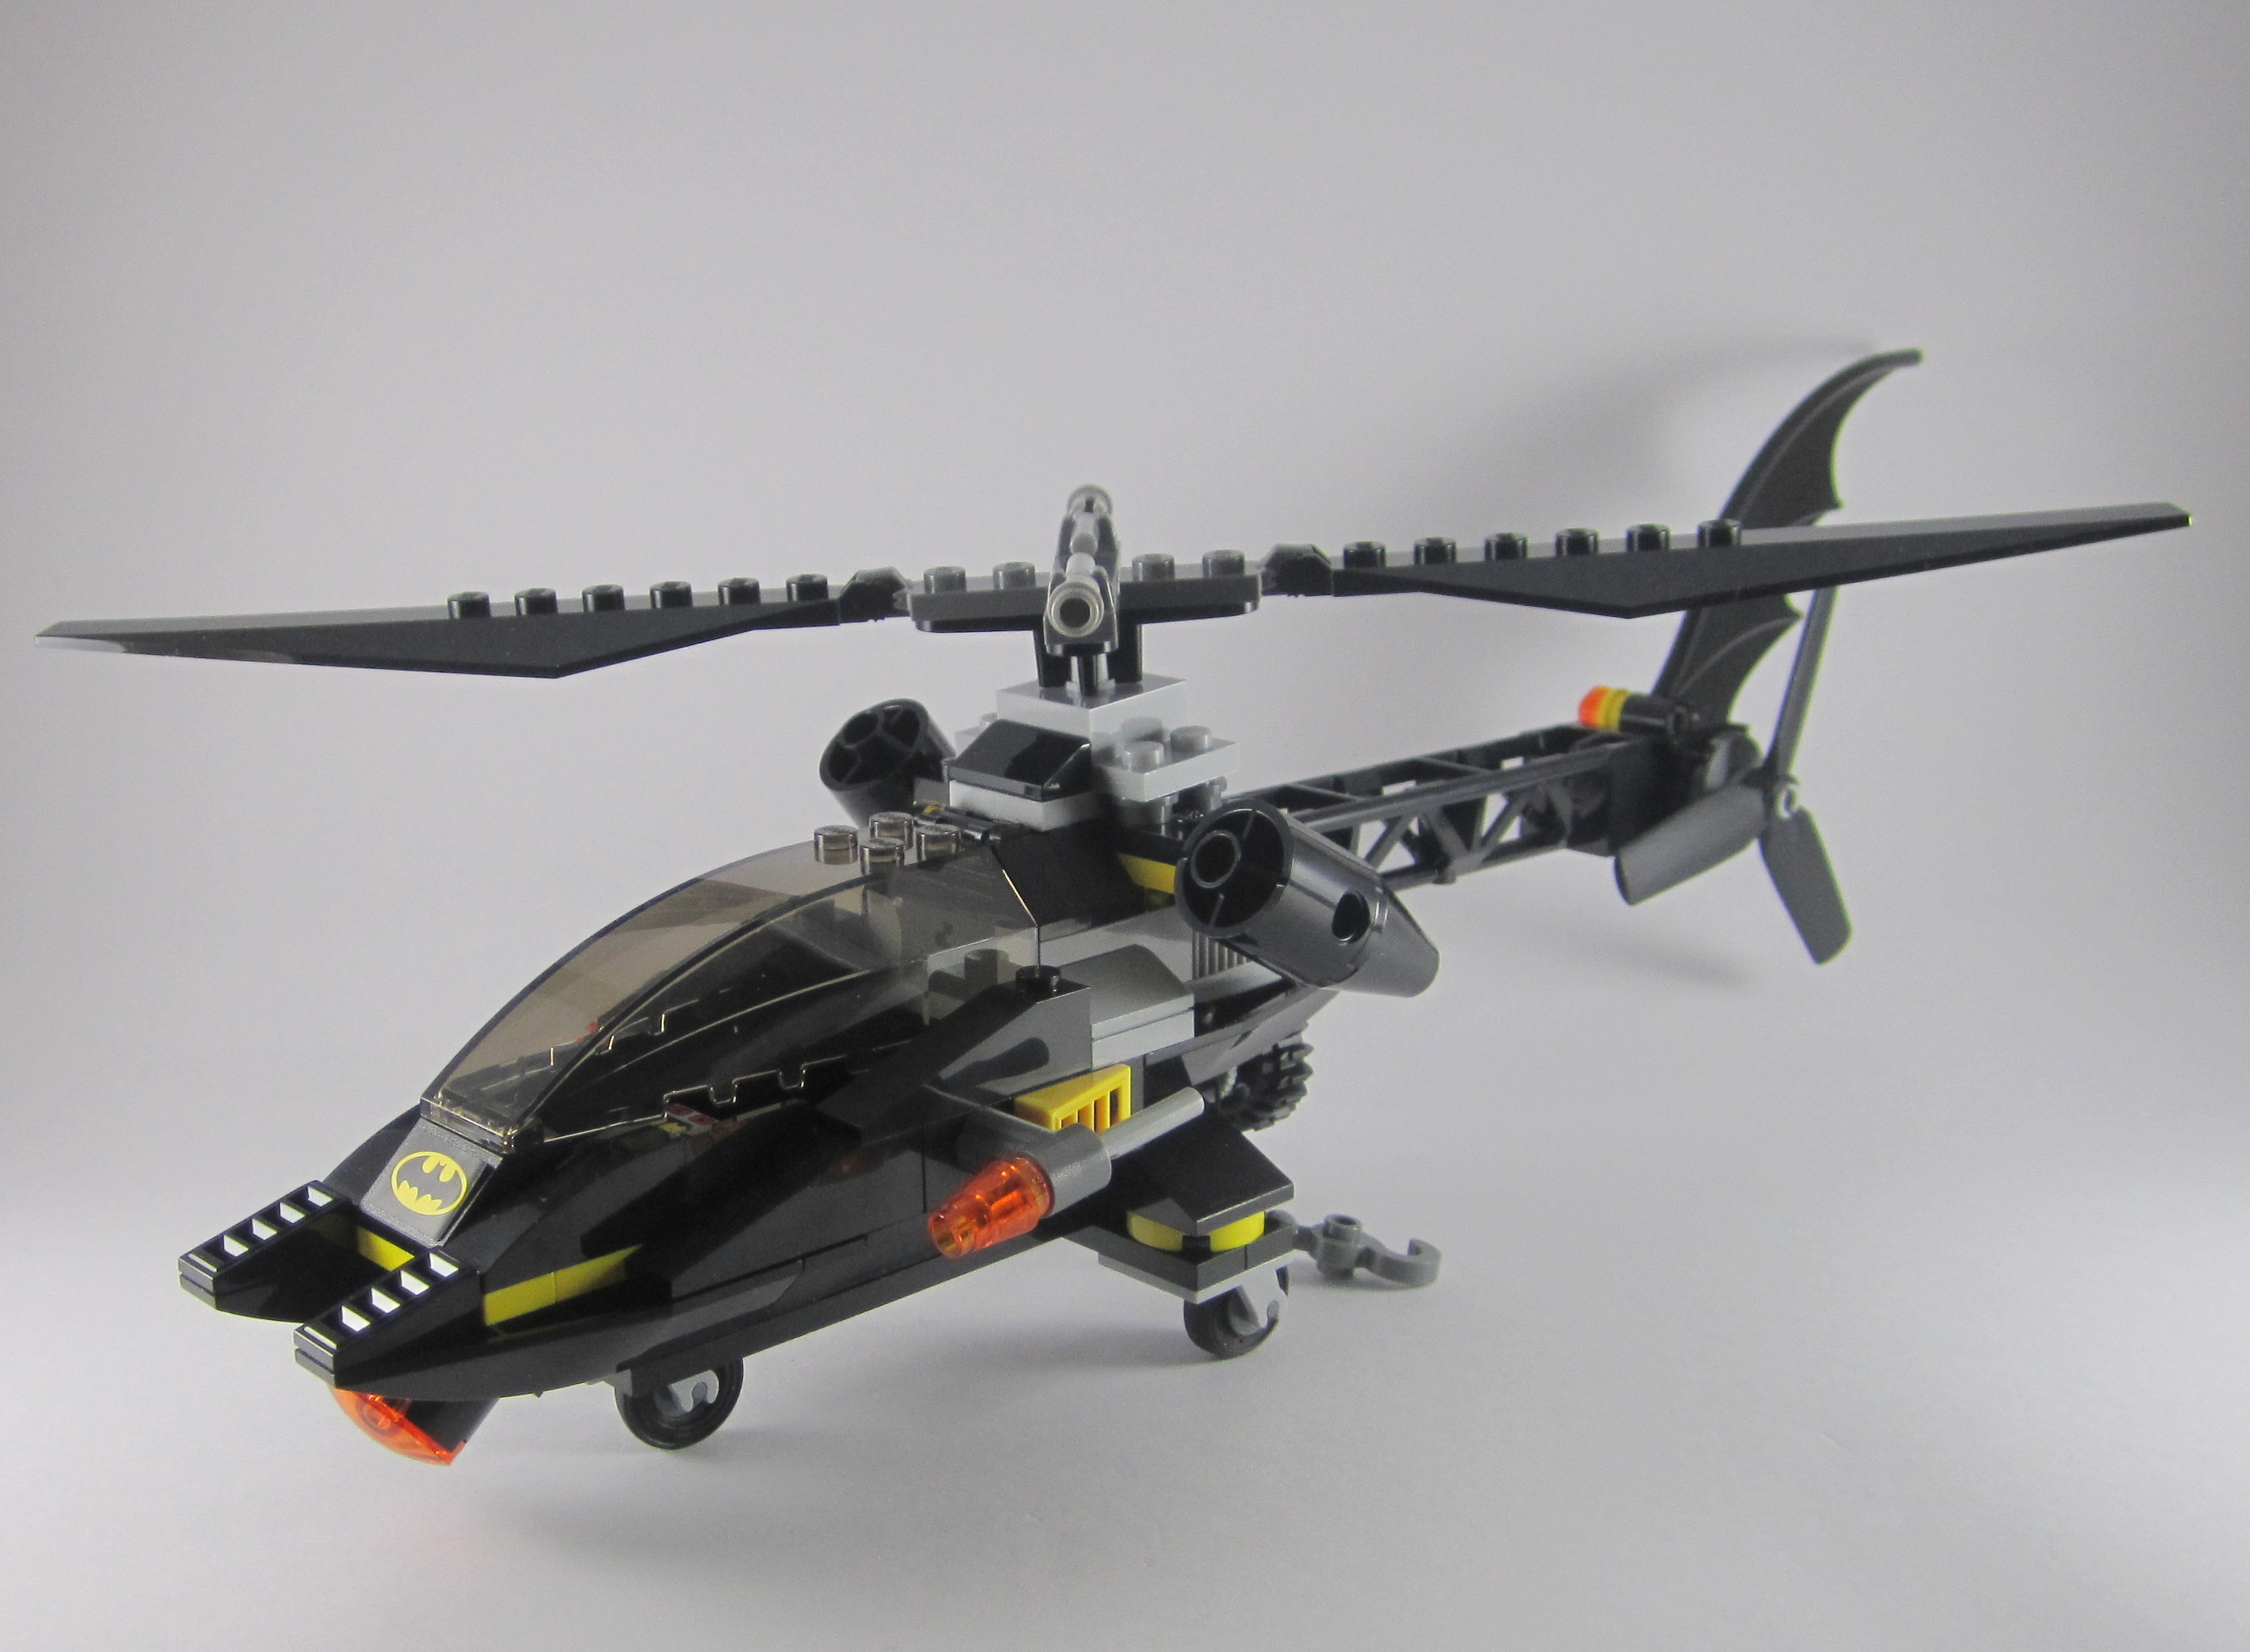 fancy helicopter with Review Lego 76011 Batman Man Bat Attack on Happy Wheels also robanmodel besides Rounded Glossy Black Icons Transport Travel besides Review Lego 76011 Batman Man Bat Attack besides Asymmetric Warfare Group.